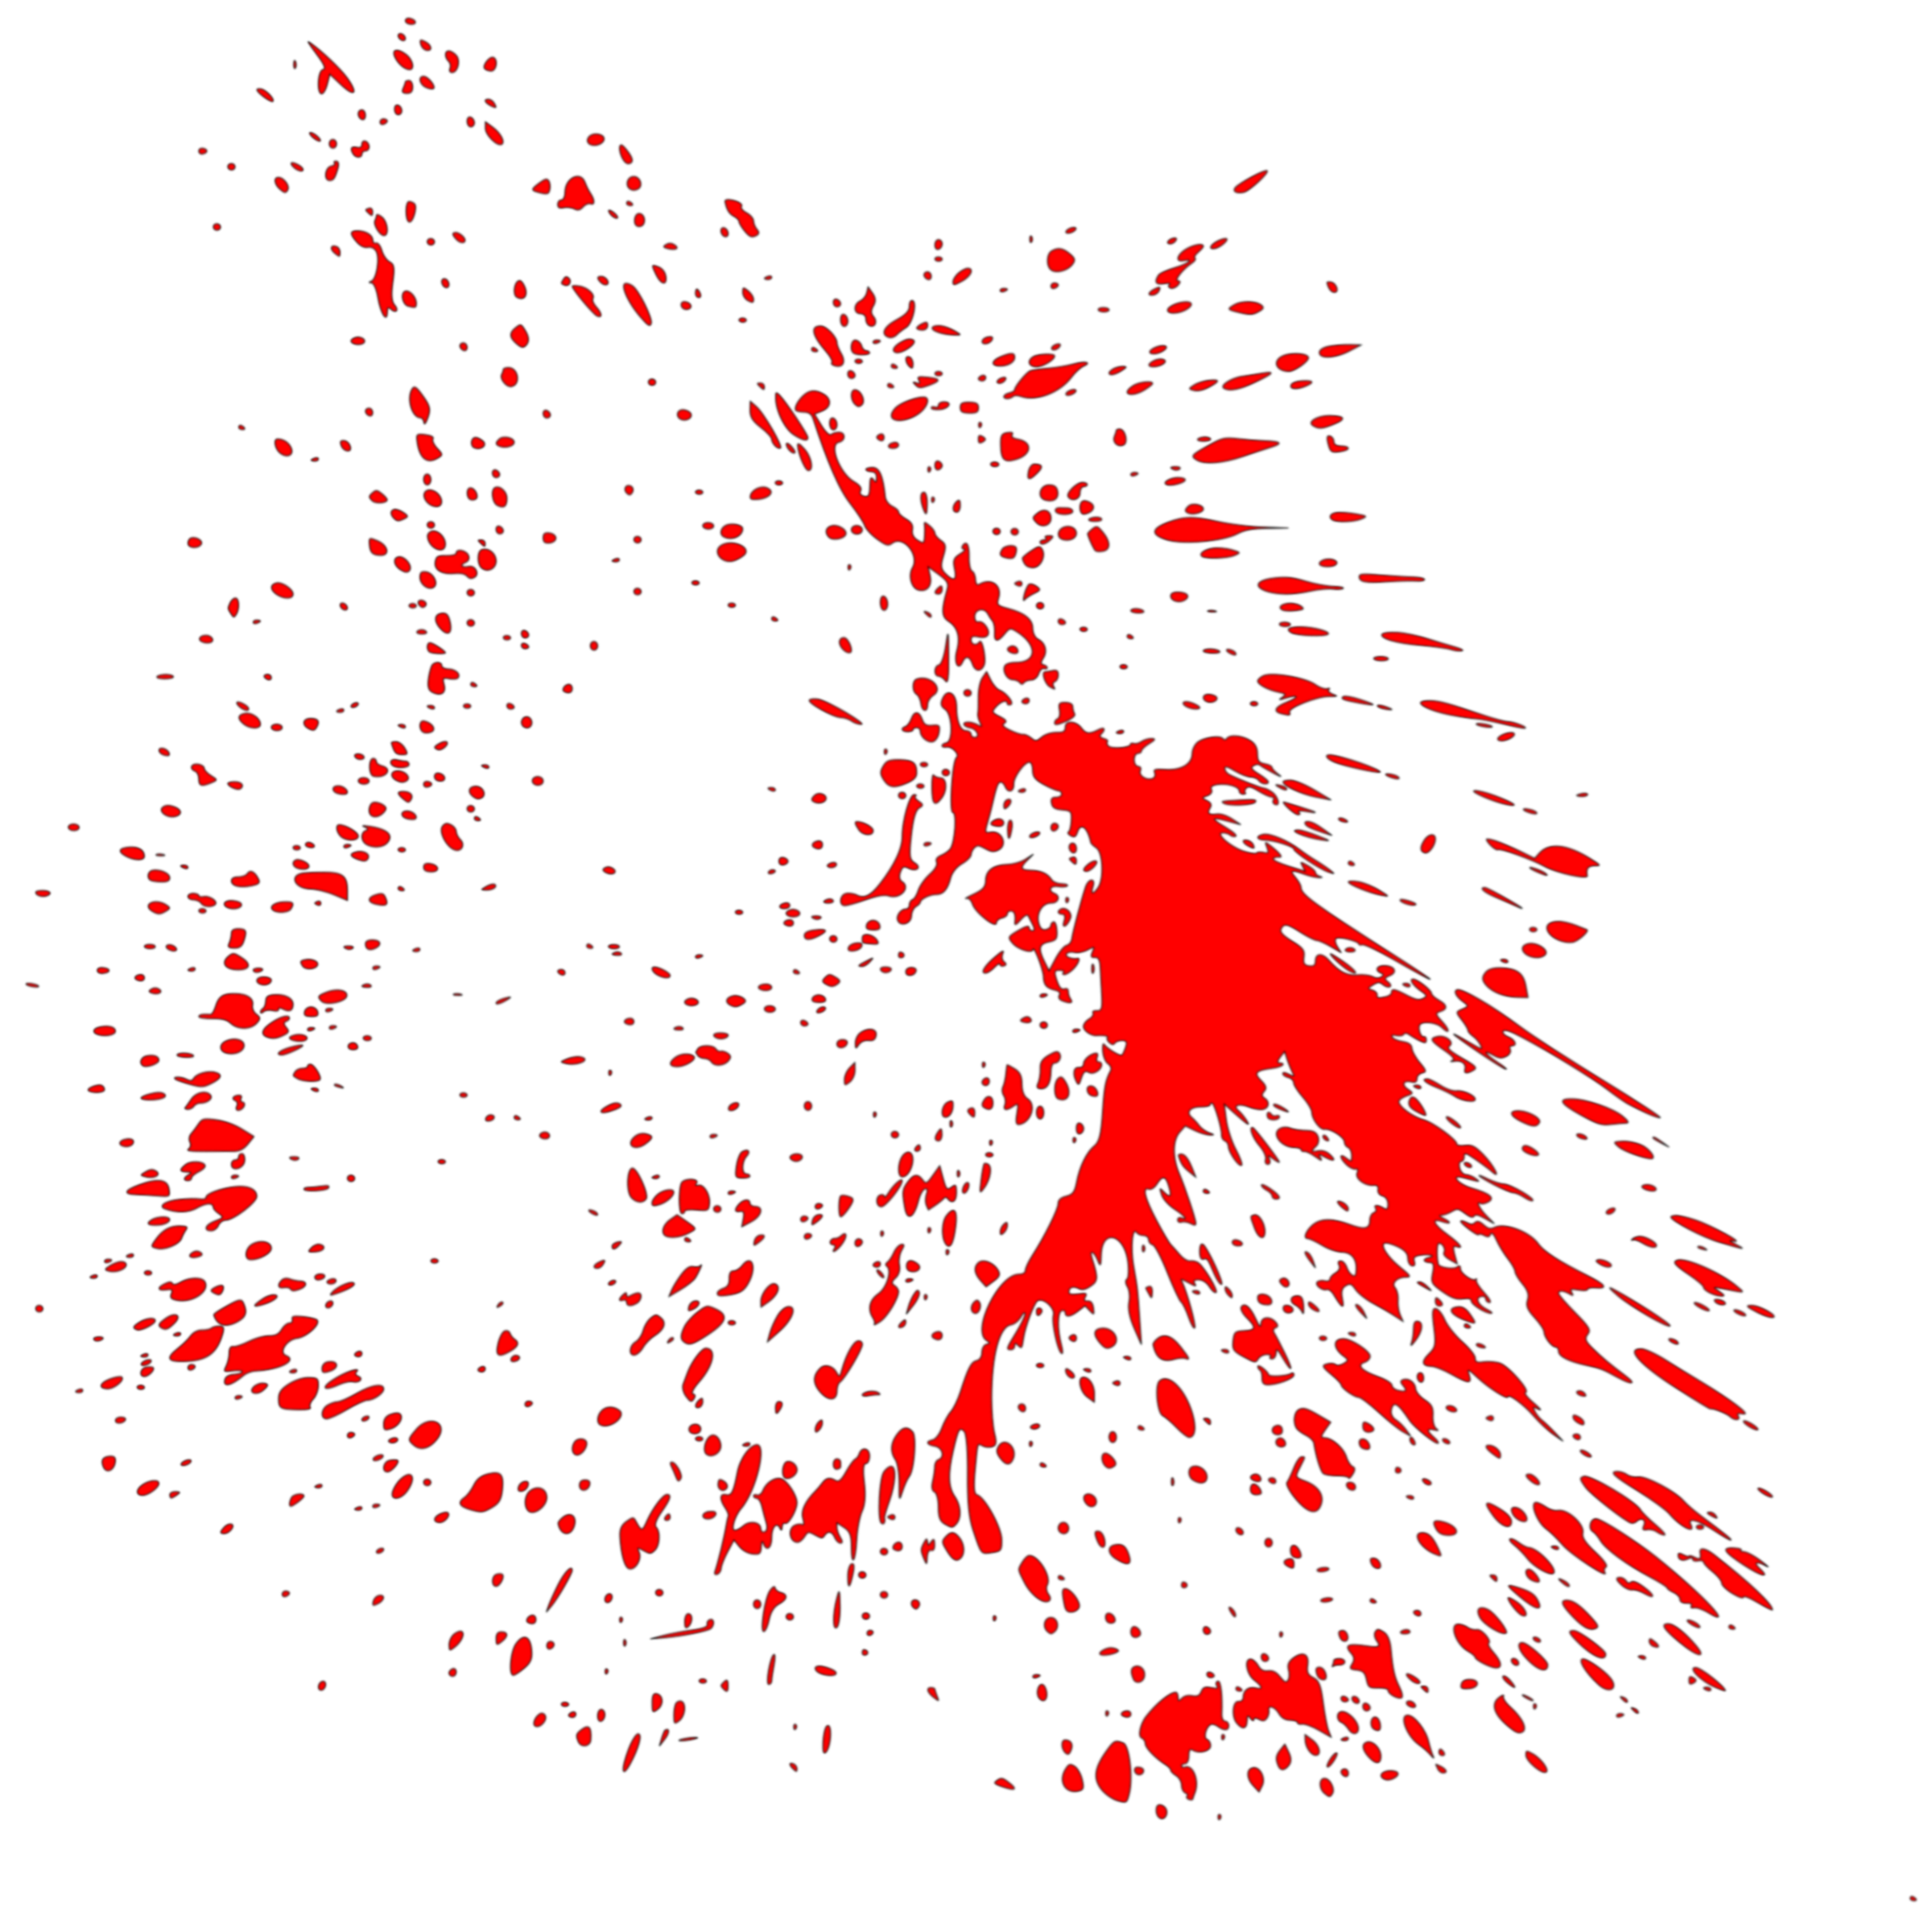 Blood svg #5, Download drawings